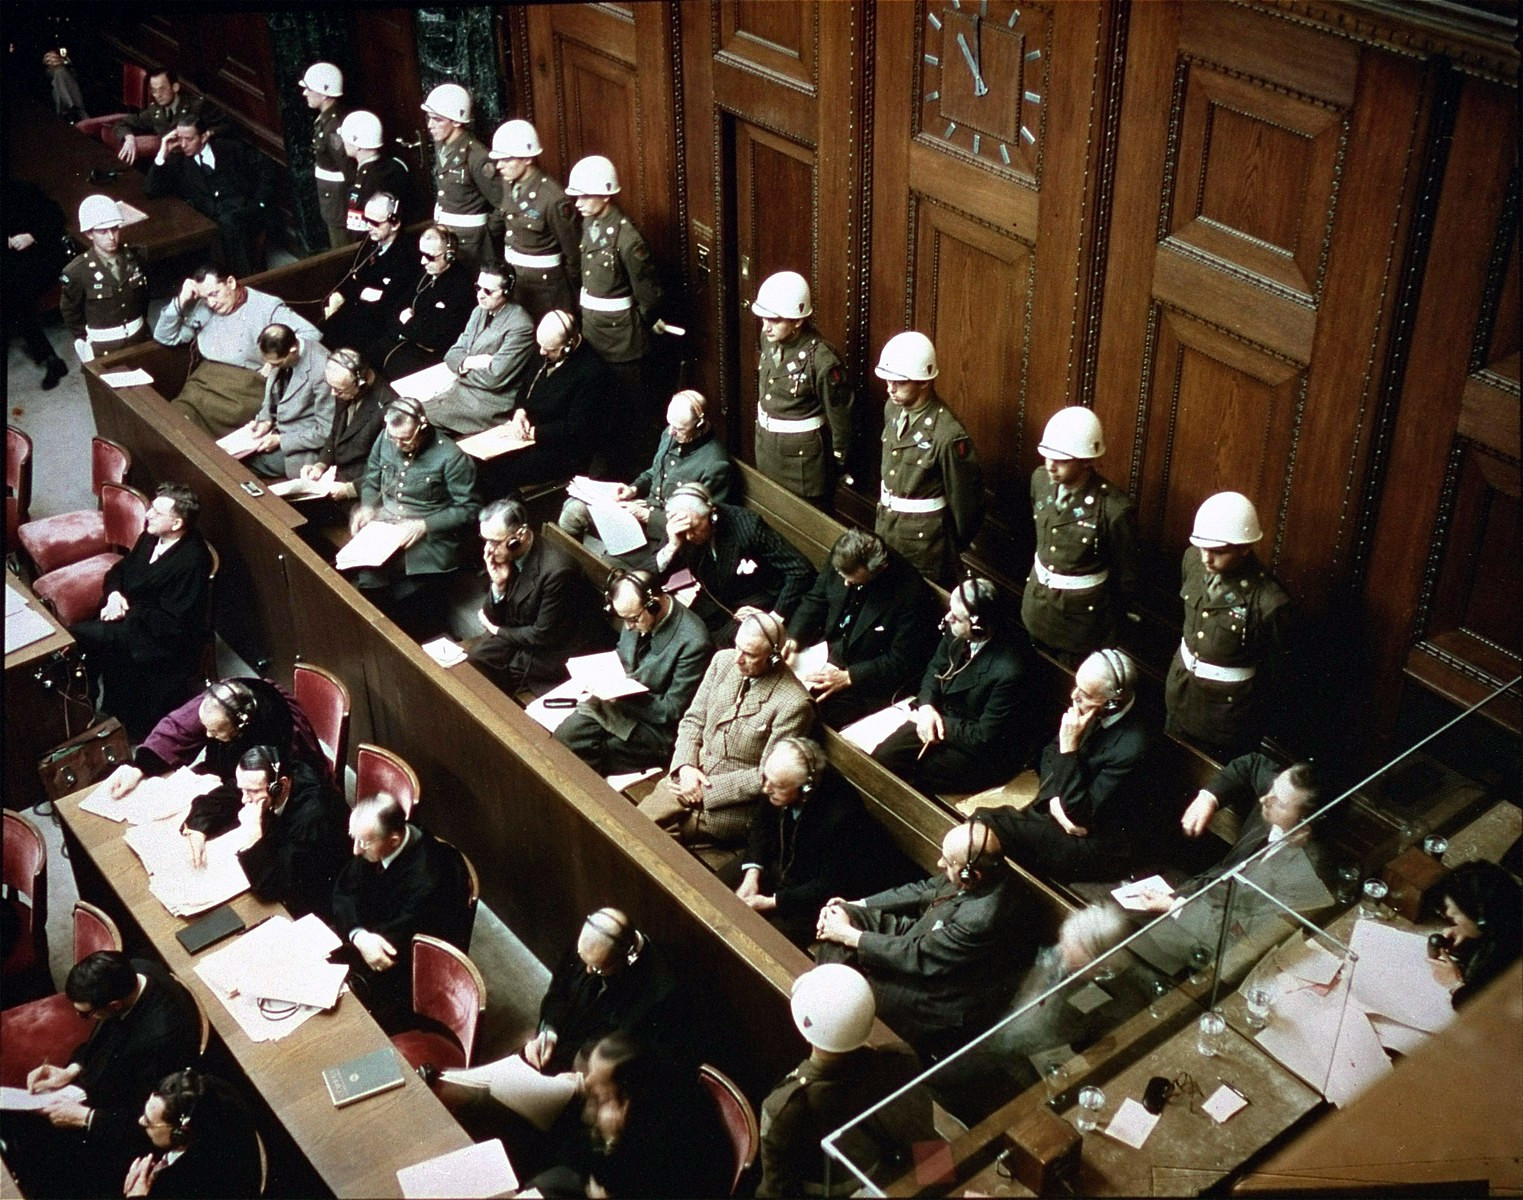 File:Defendants in the dock at nuremberg trials.jpg